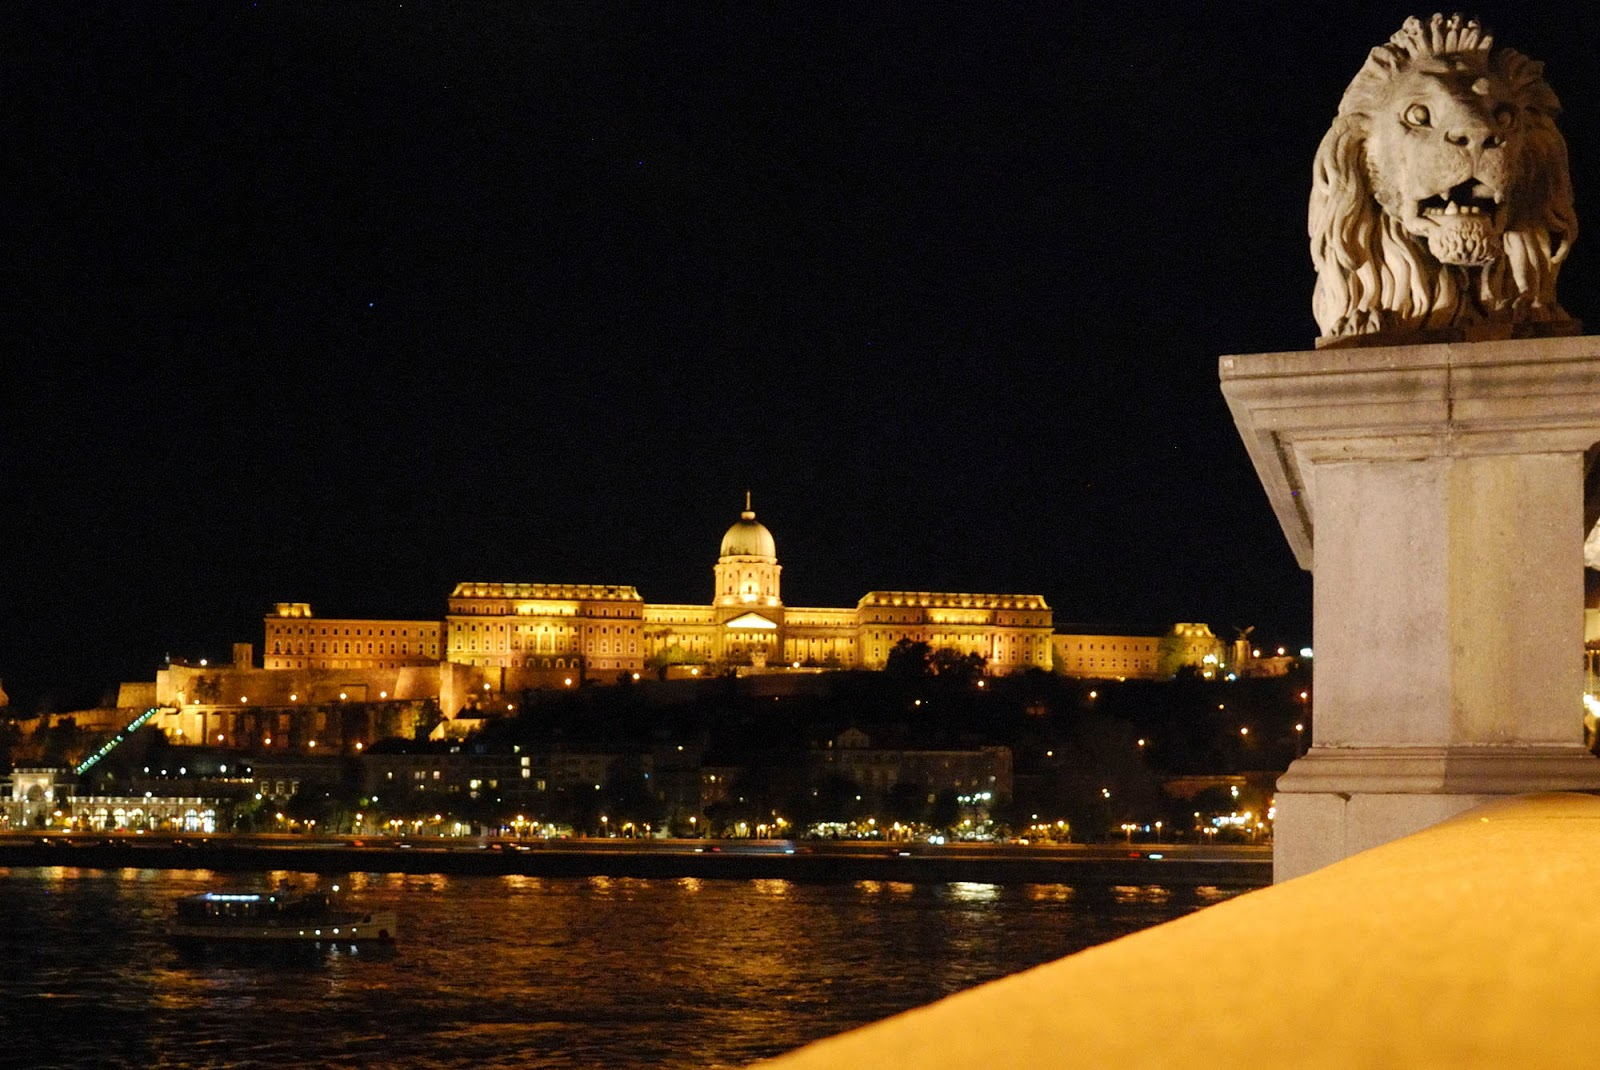 budapest guide itinerary instagram worthy spot sights landmarks hungary night city lights buda castle district